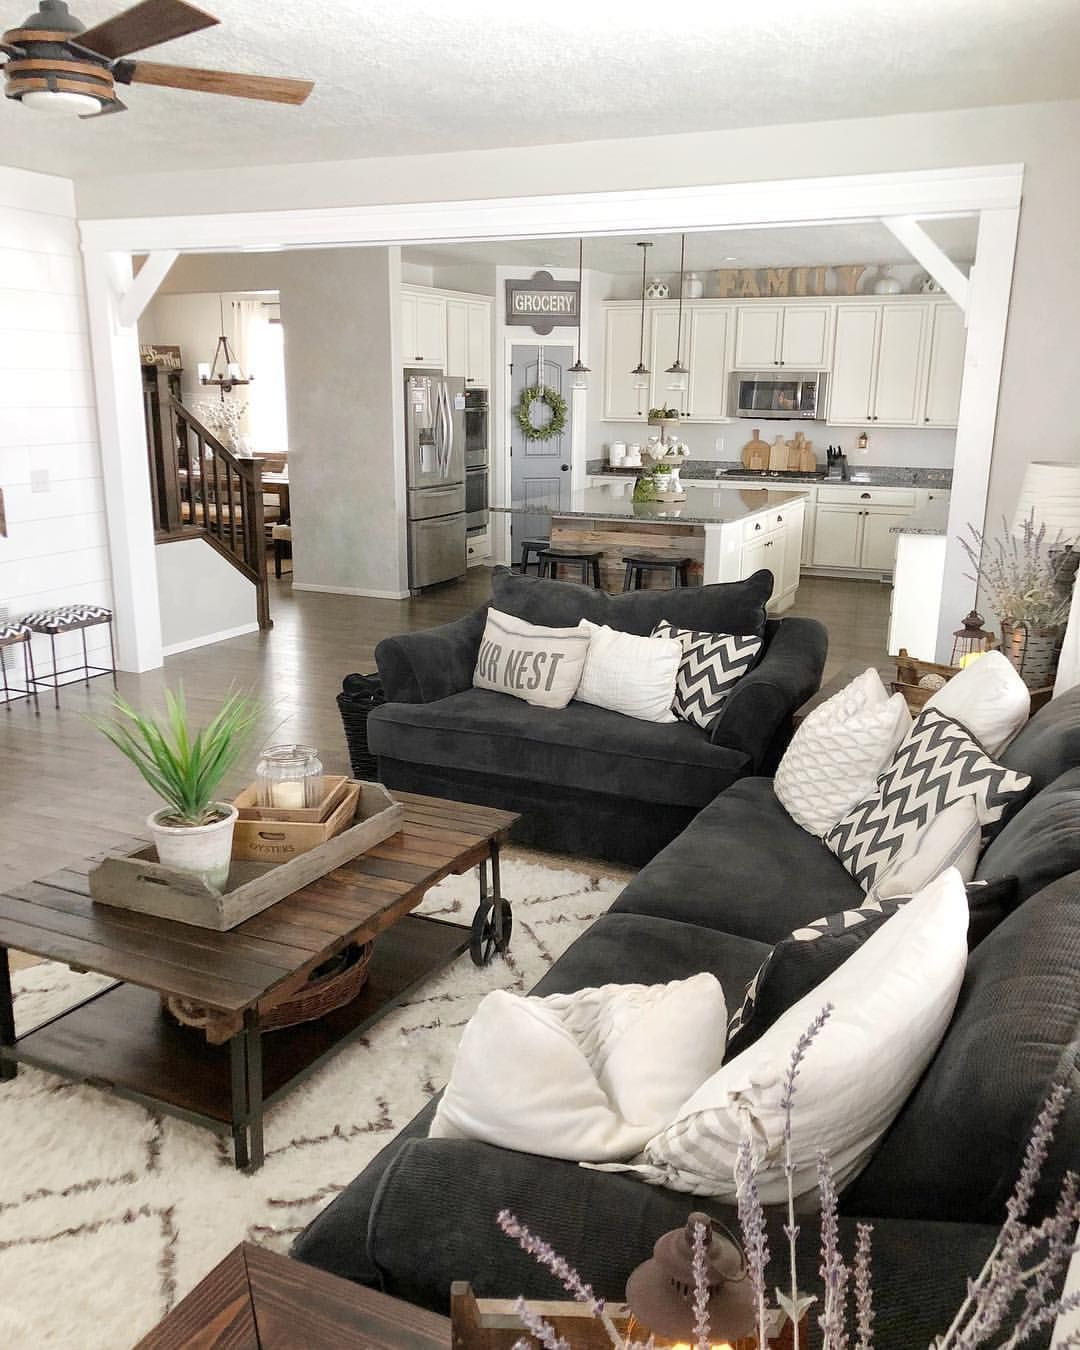 Kaycie grey birch designs on instagram  cit   so fun for me to look back the pictures we have of our home before moved in and see all changes also best living room decoration tips images rh pinterest